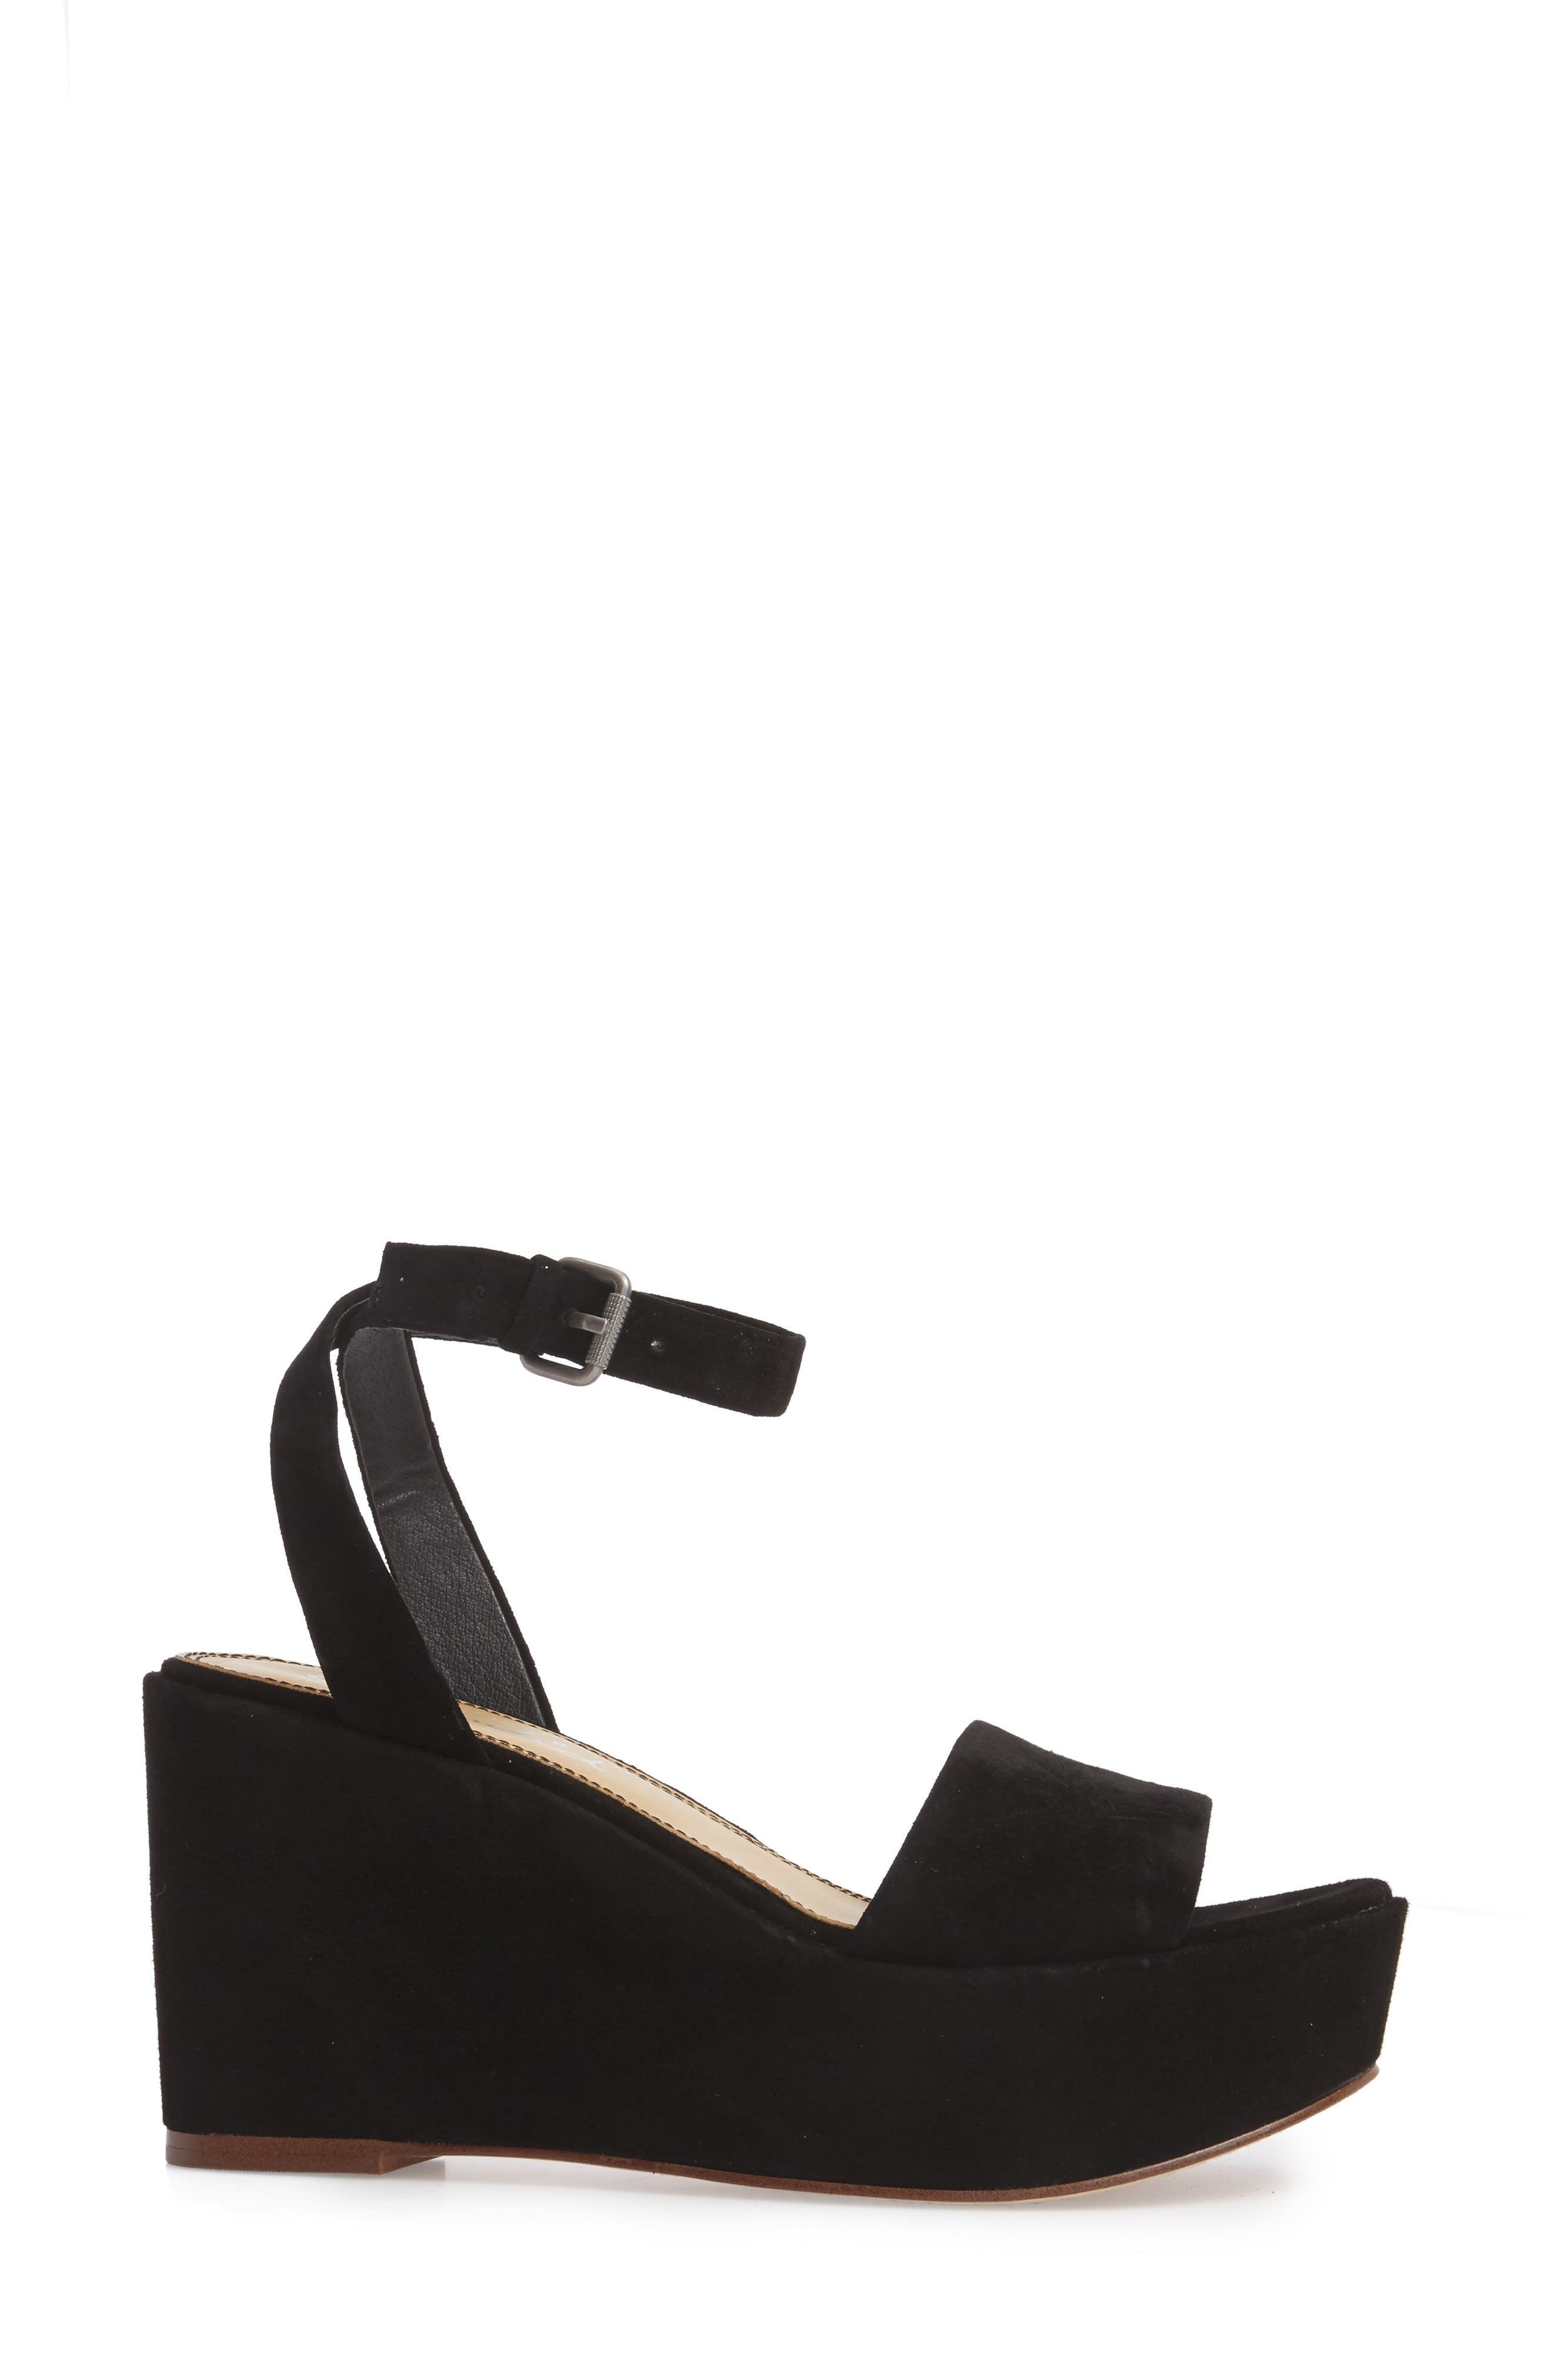 Felix Platform Wedge Sandal,                             Alternate thumbnail 3, color,                             BLACK SUEDE